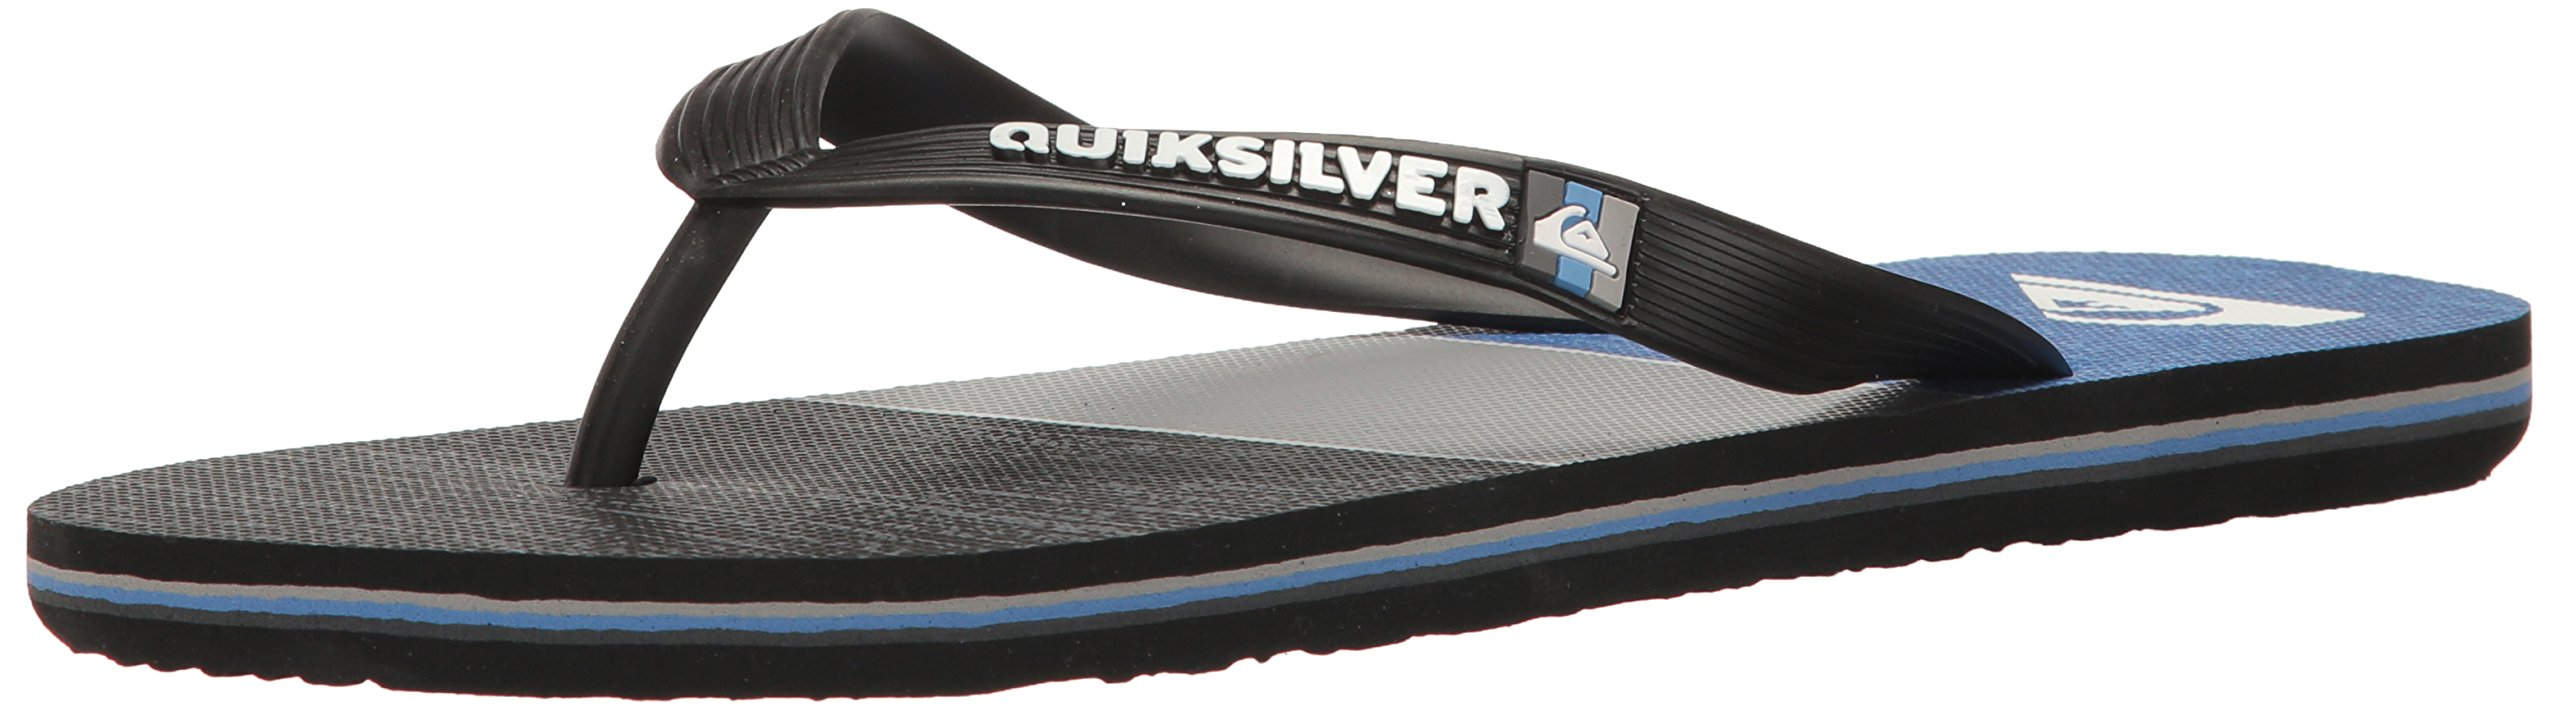 Quiksilver Men's Molokai Everyday Blocked, Black/Grey/Blue, 13 M US